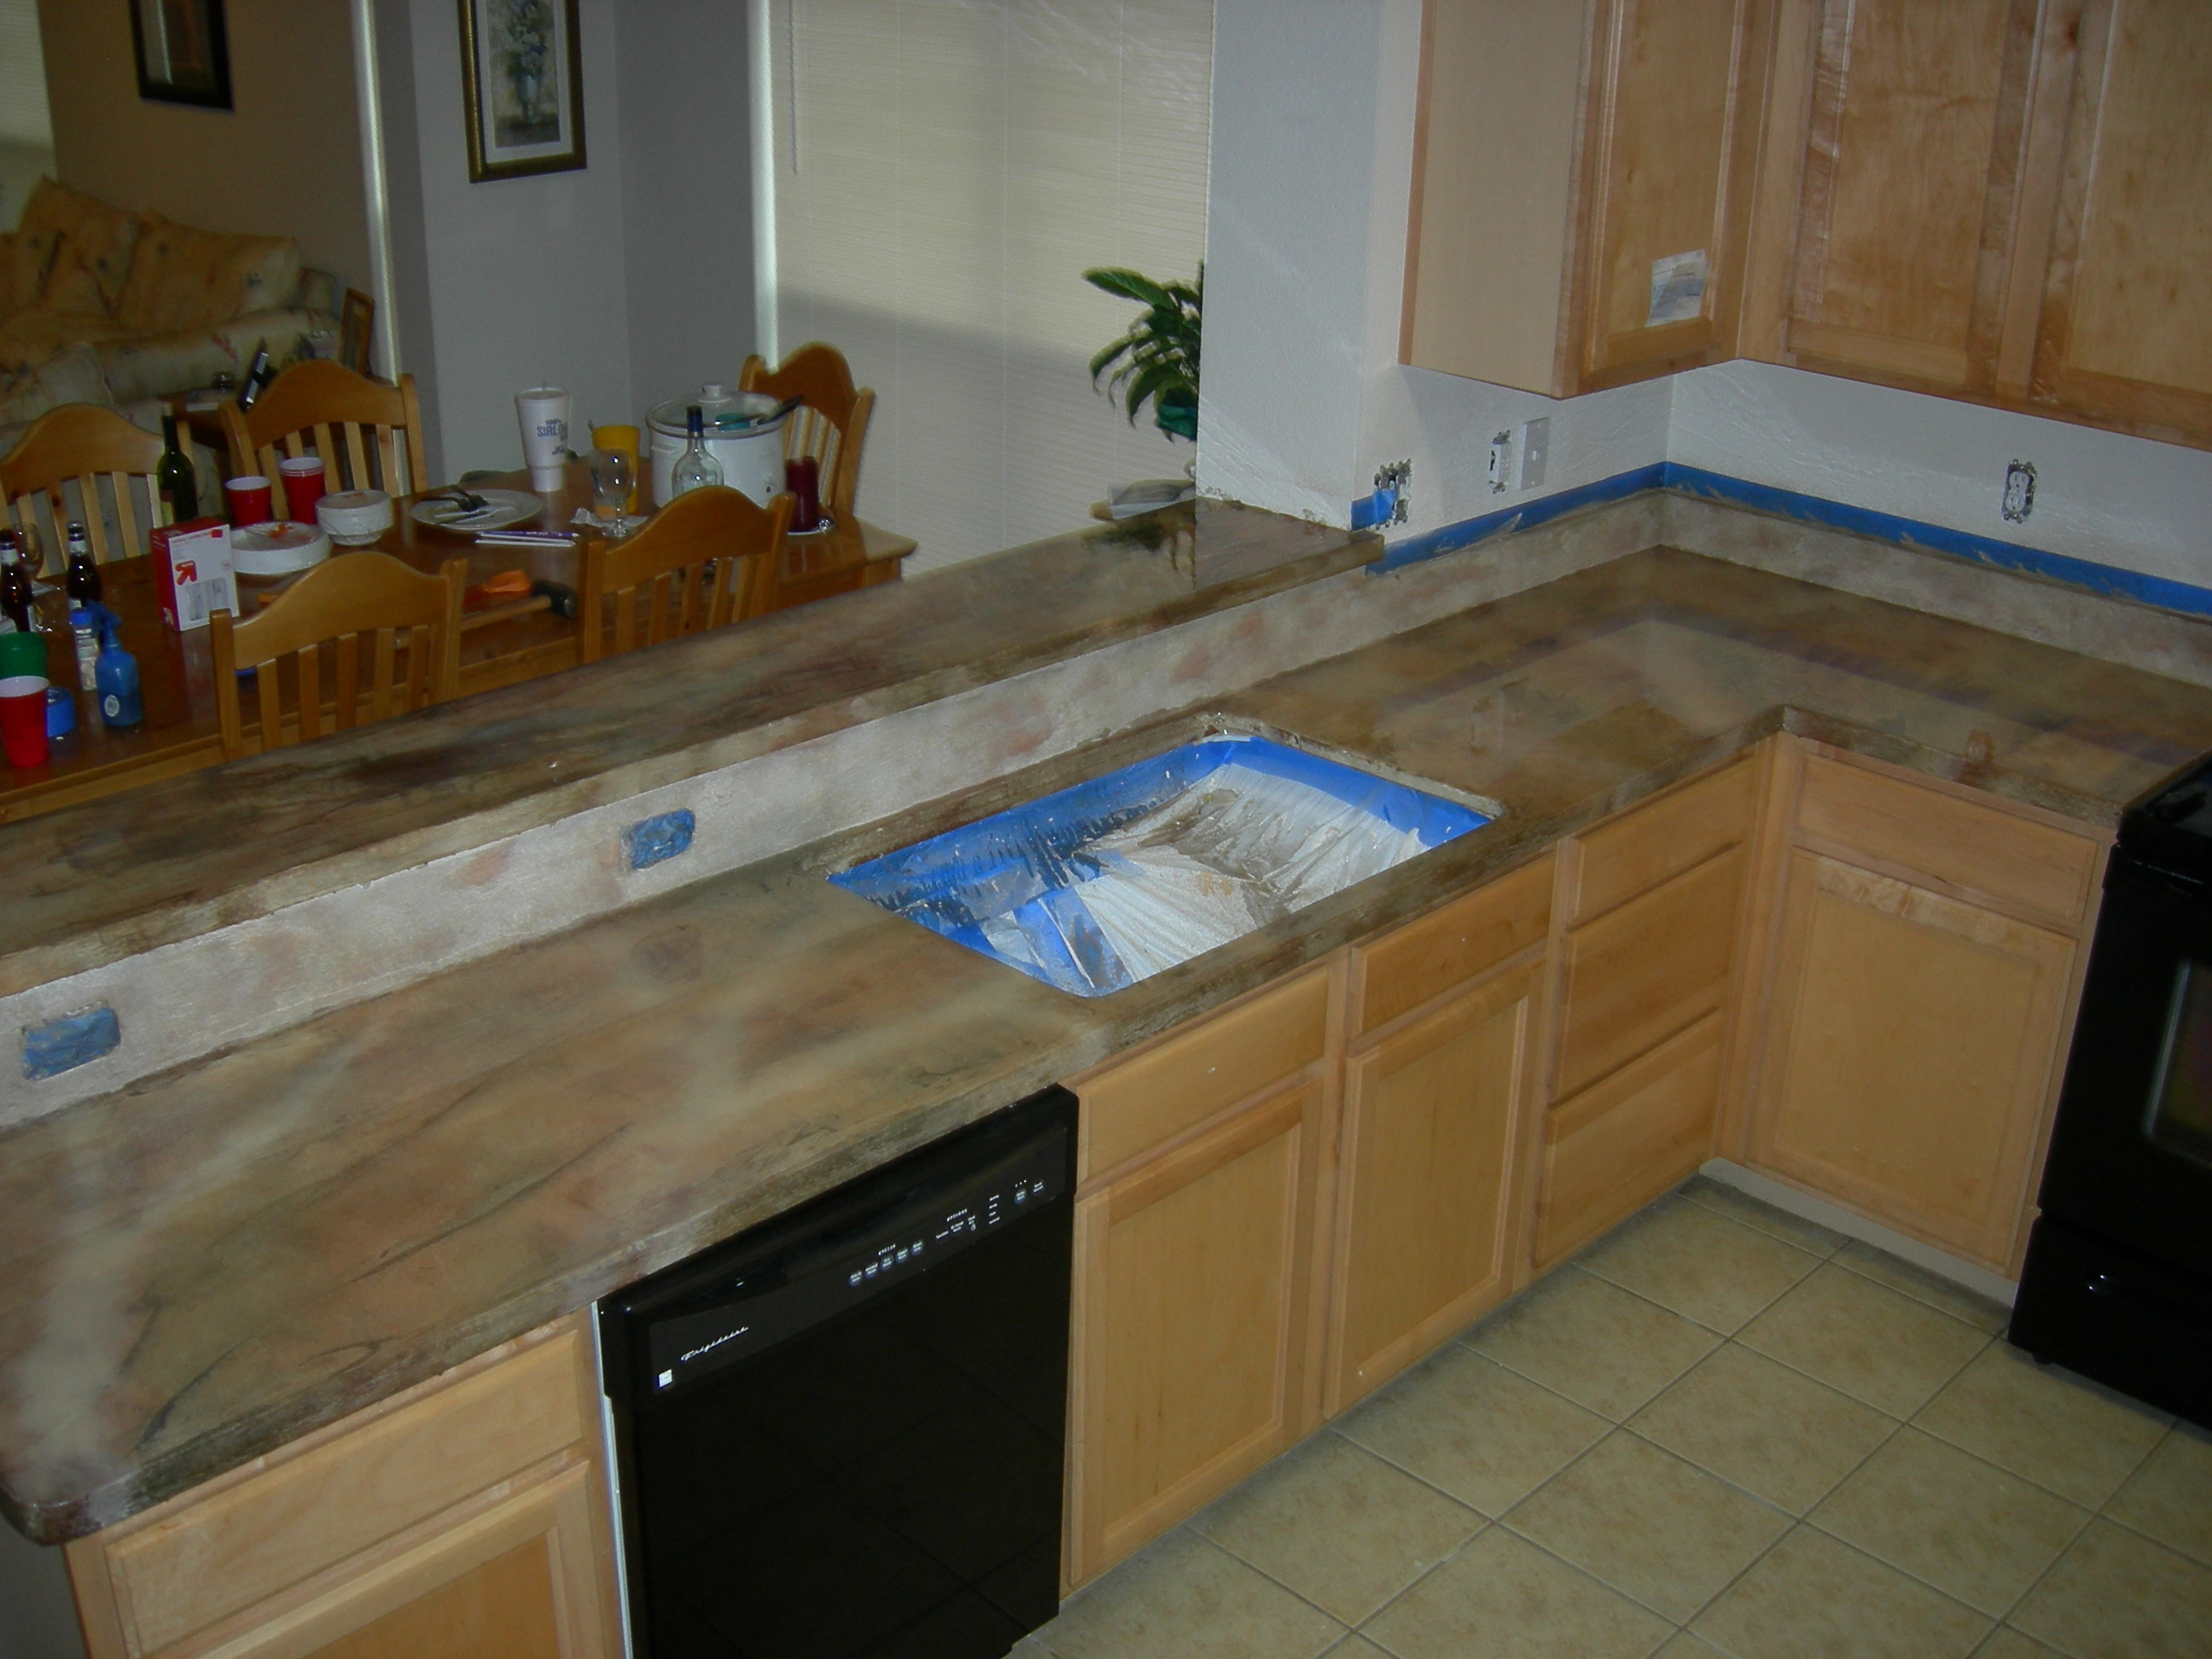 Residential kitchen countertop